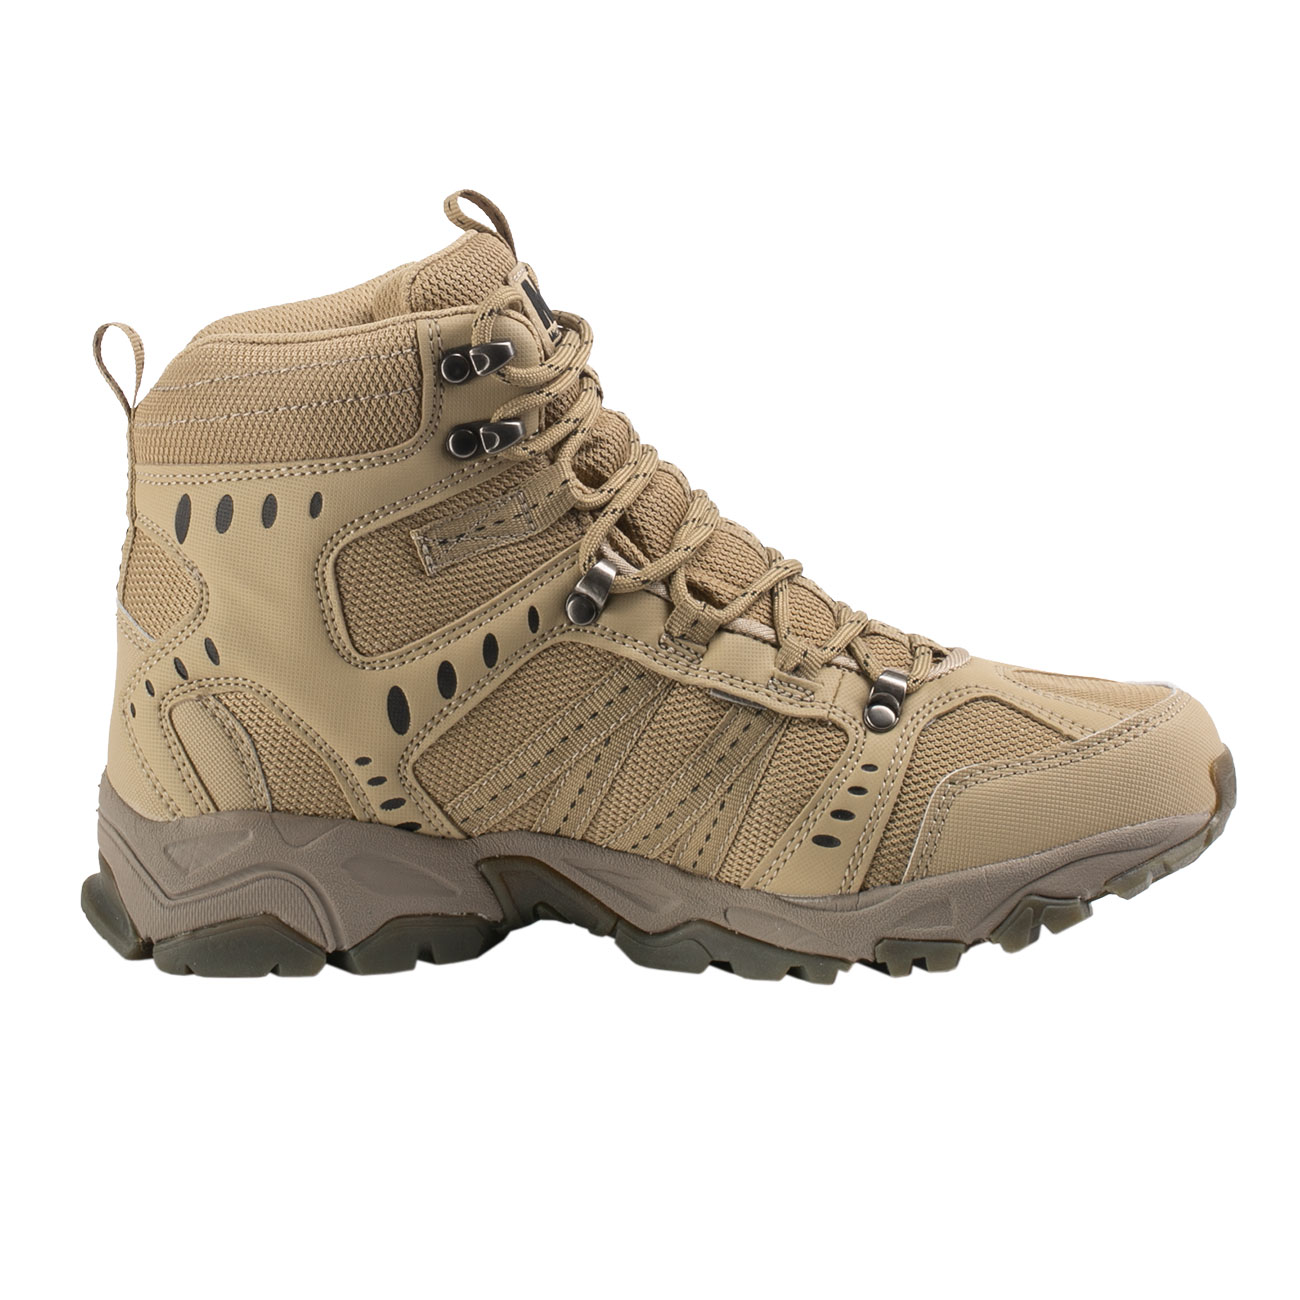 MFH Einsatzstiefel Tactical coyote tan 5